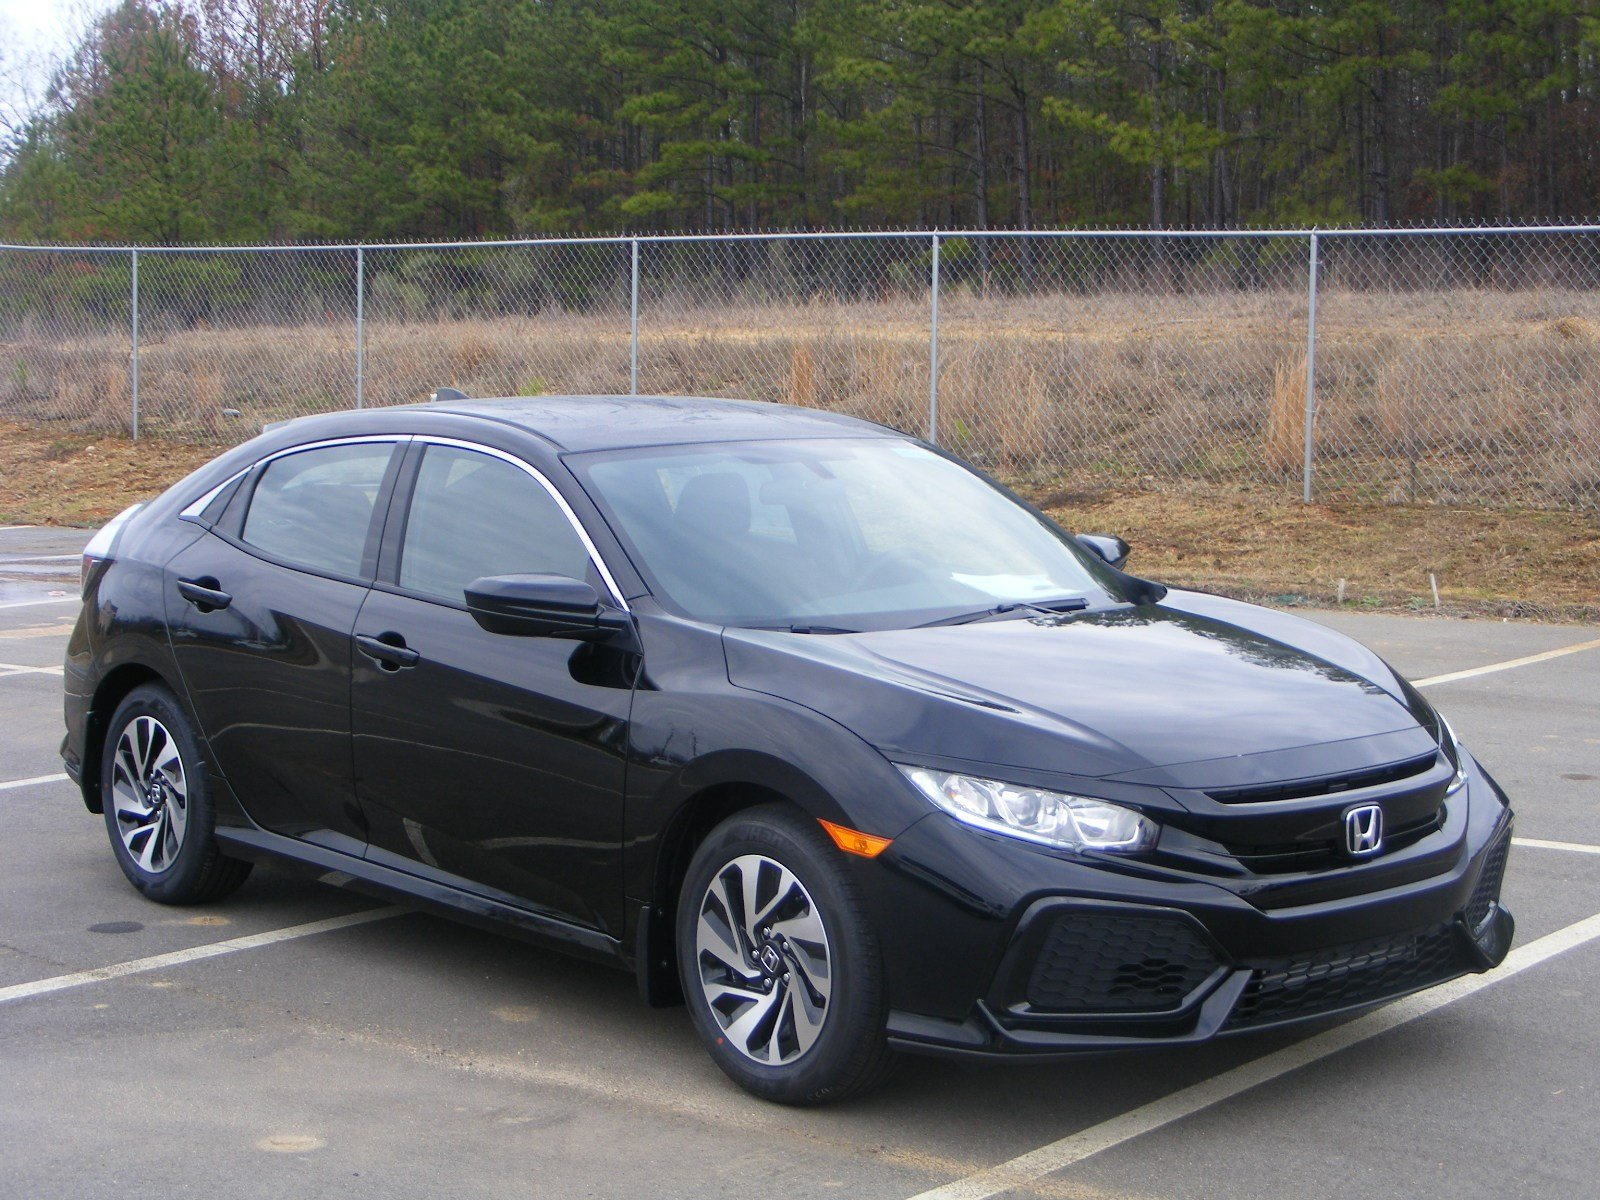 new 2017 honda civic hatchback lx hatchback in milledgeville h17161 butler honda. Black Bedroom Furniture Sets. Home Design Ideas